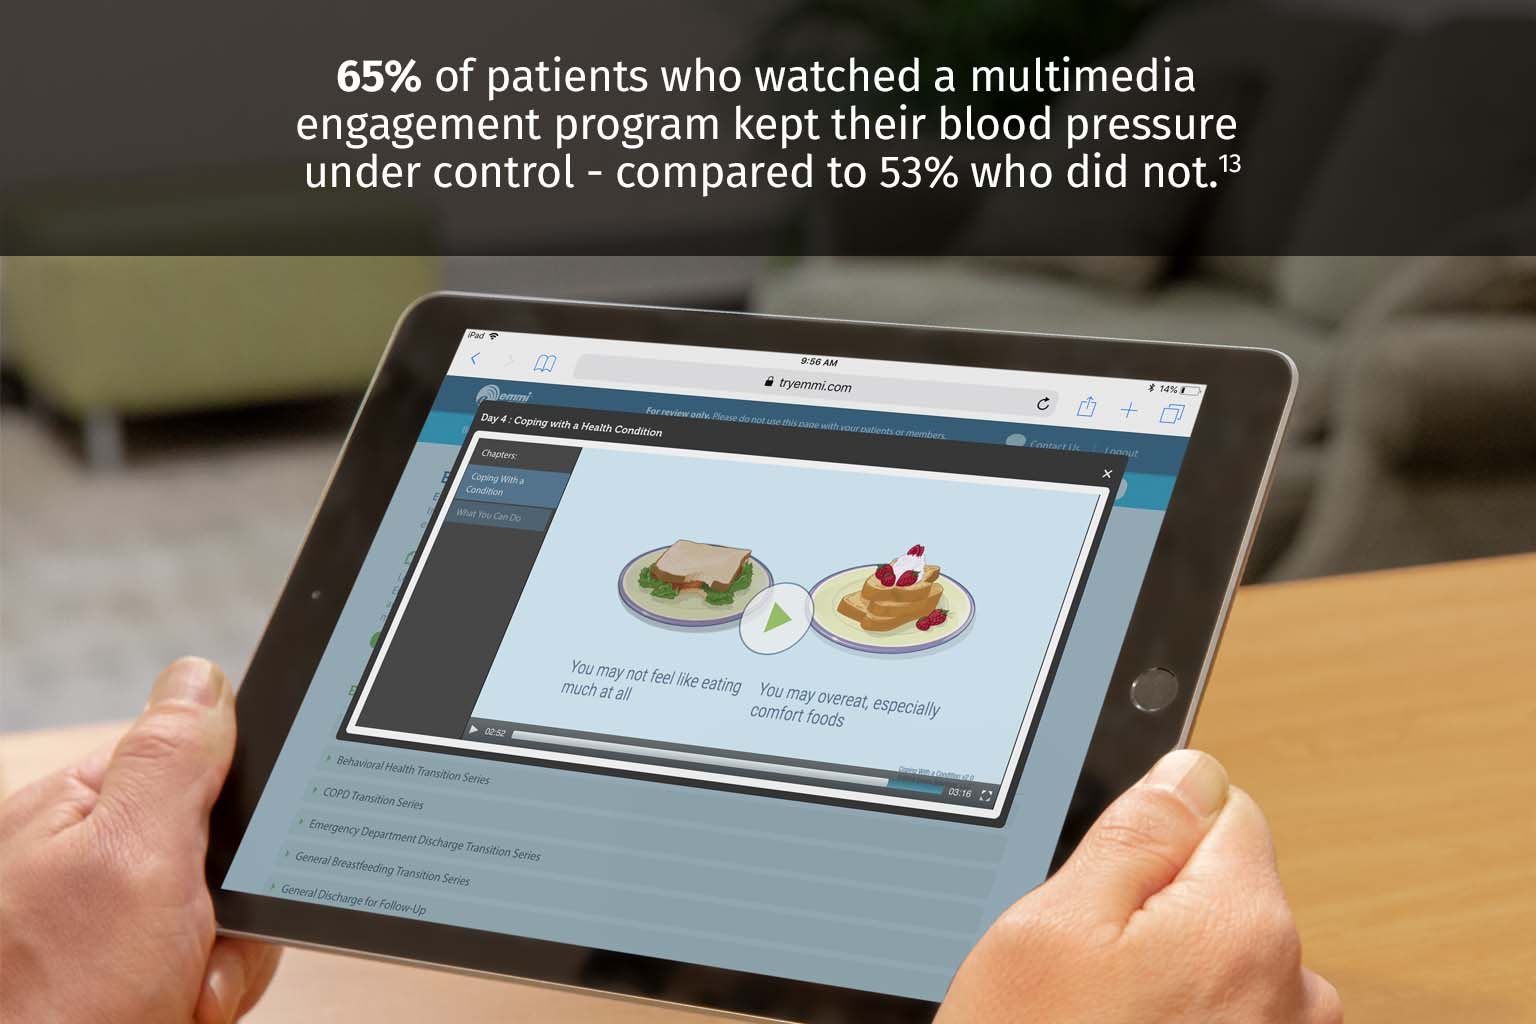 Patient viewing information on a tablet at home